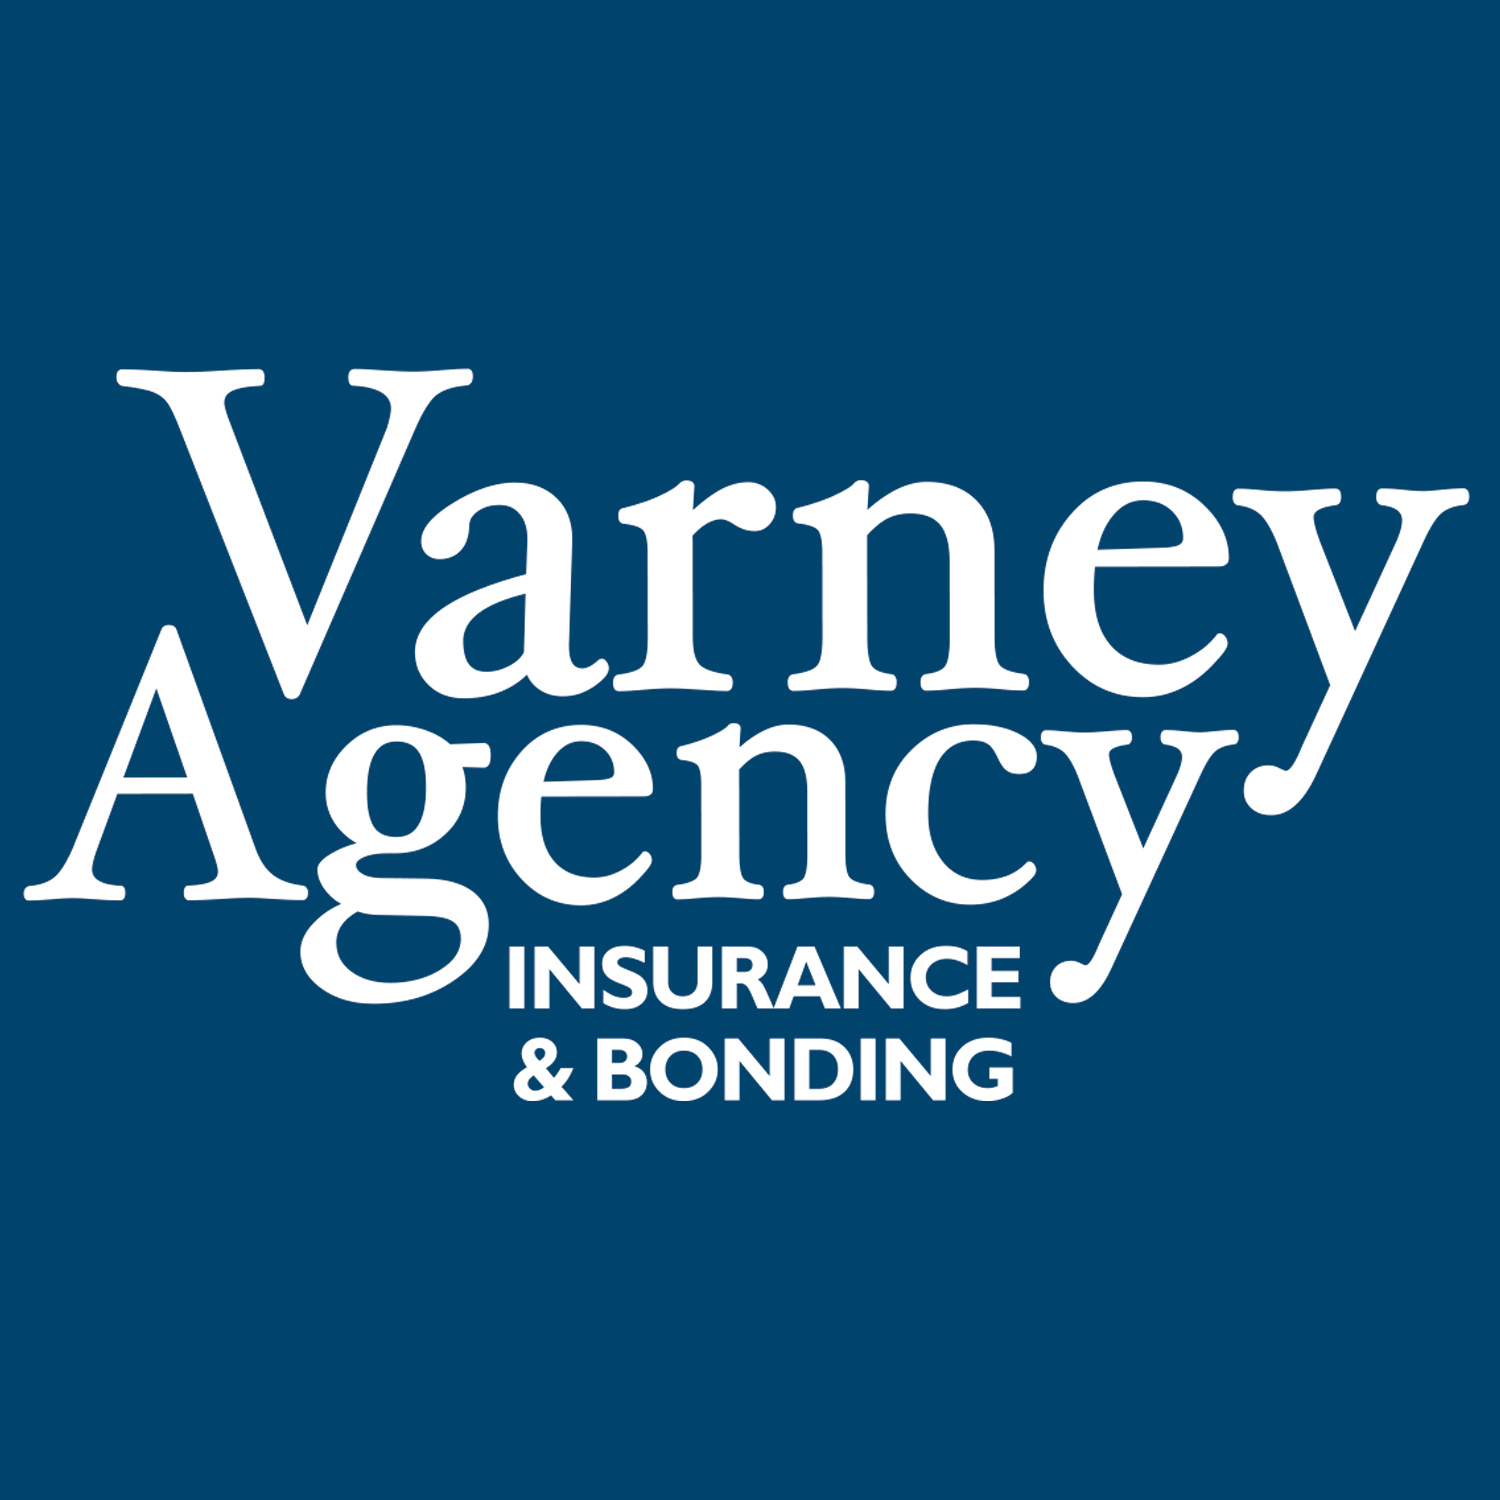 Varney Agency | Insurance & Bonding